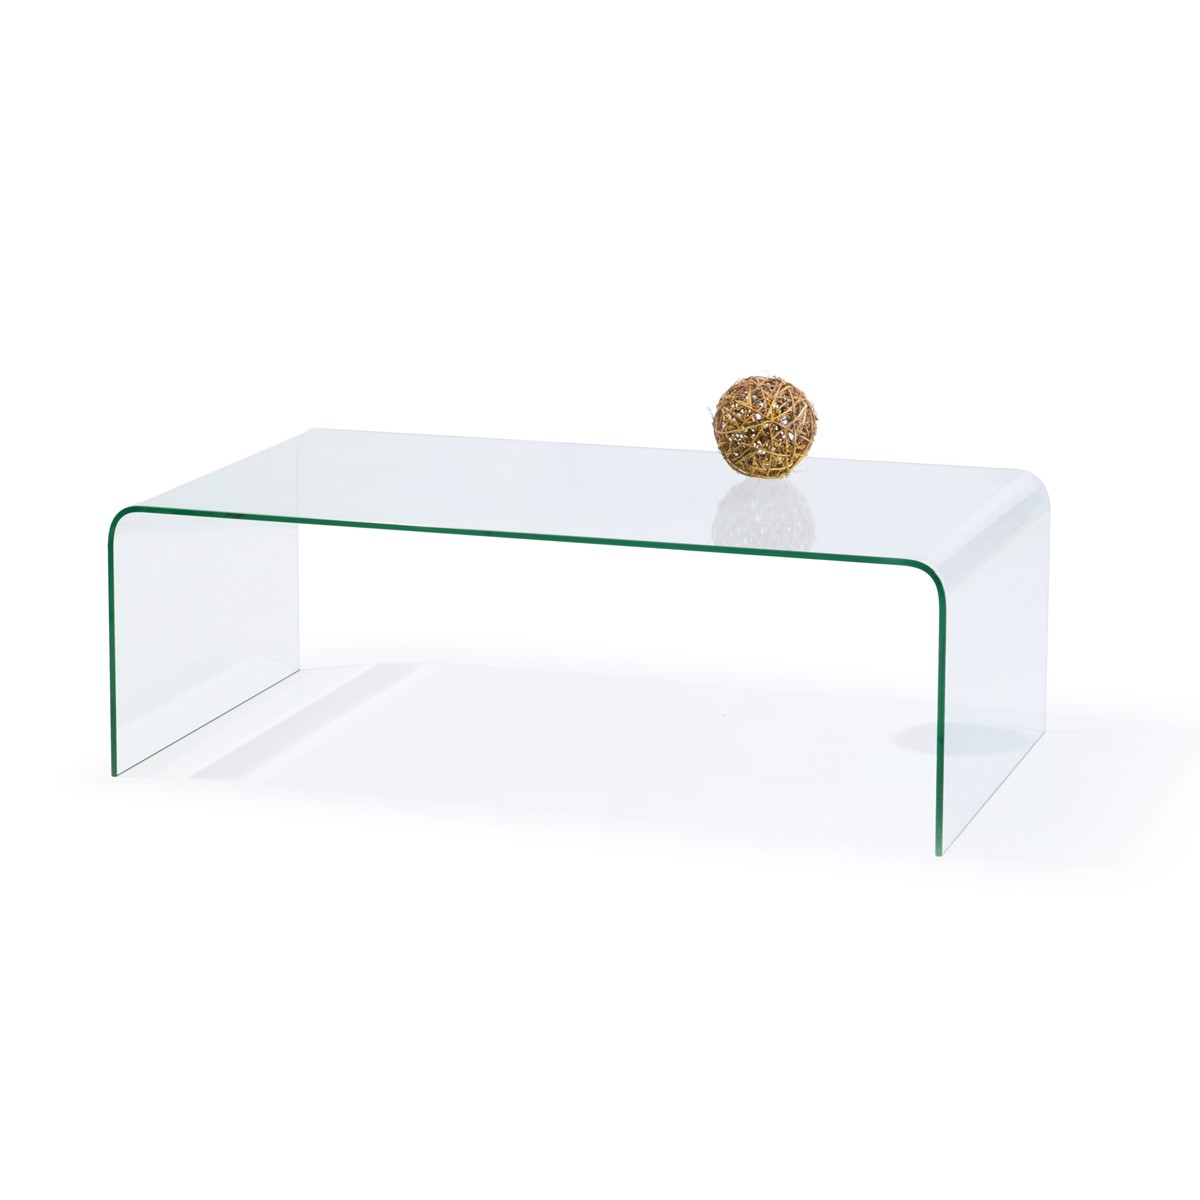 Crystalline - Coffee Table with Square Clear Glass